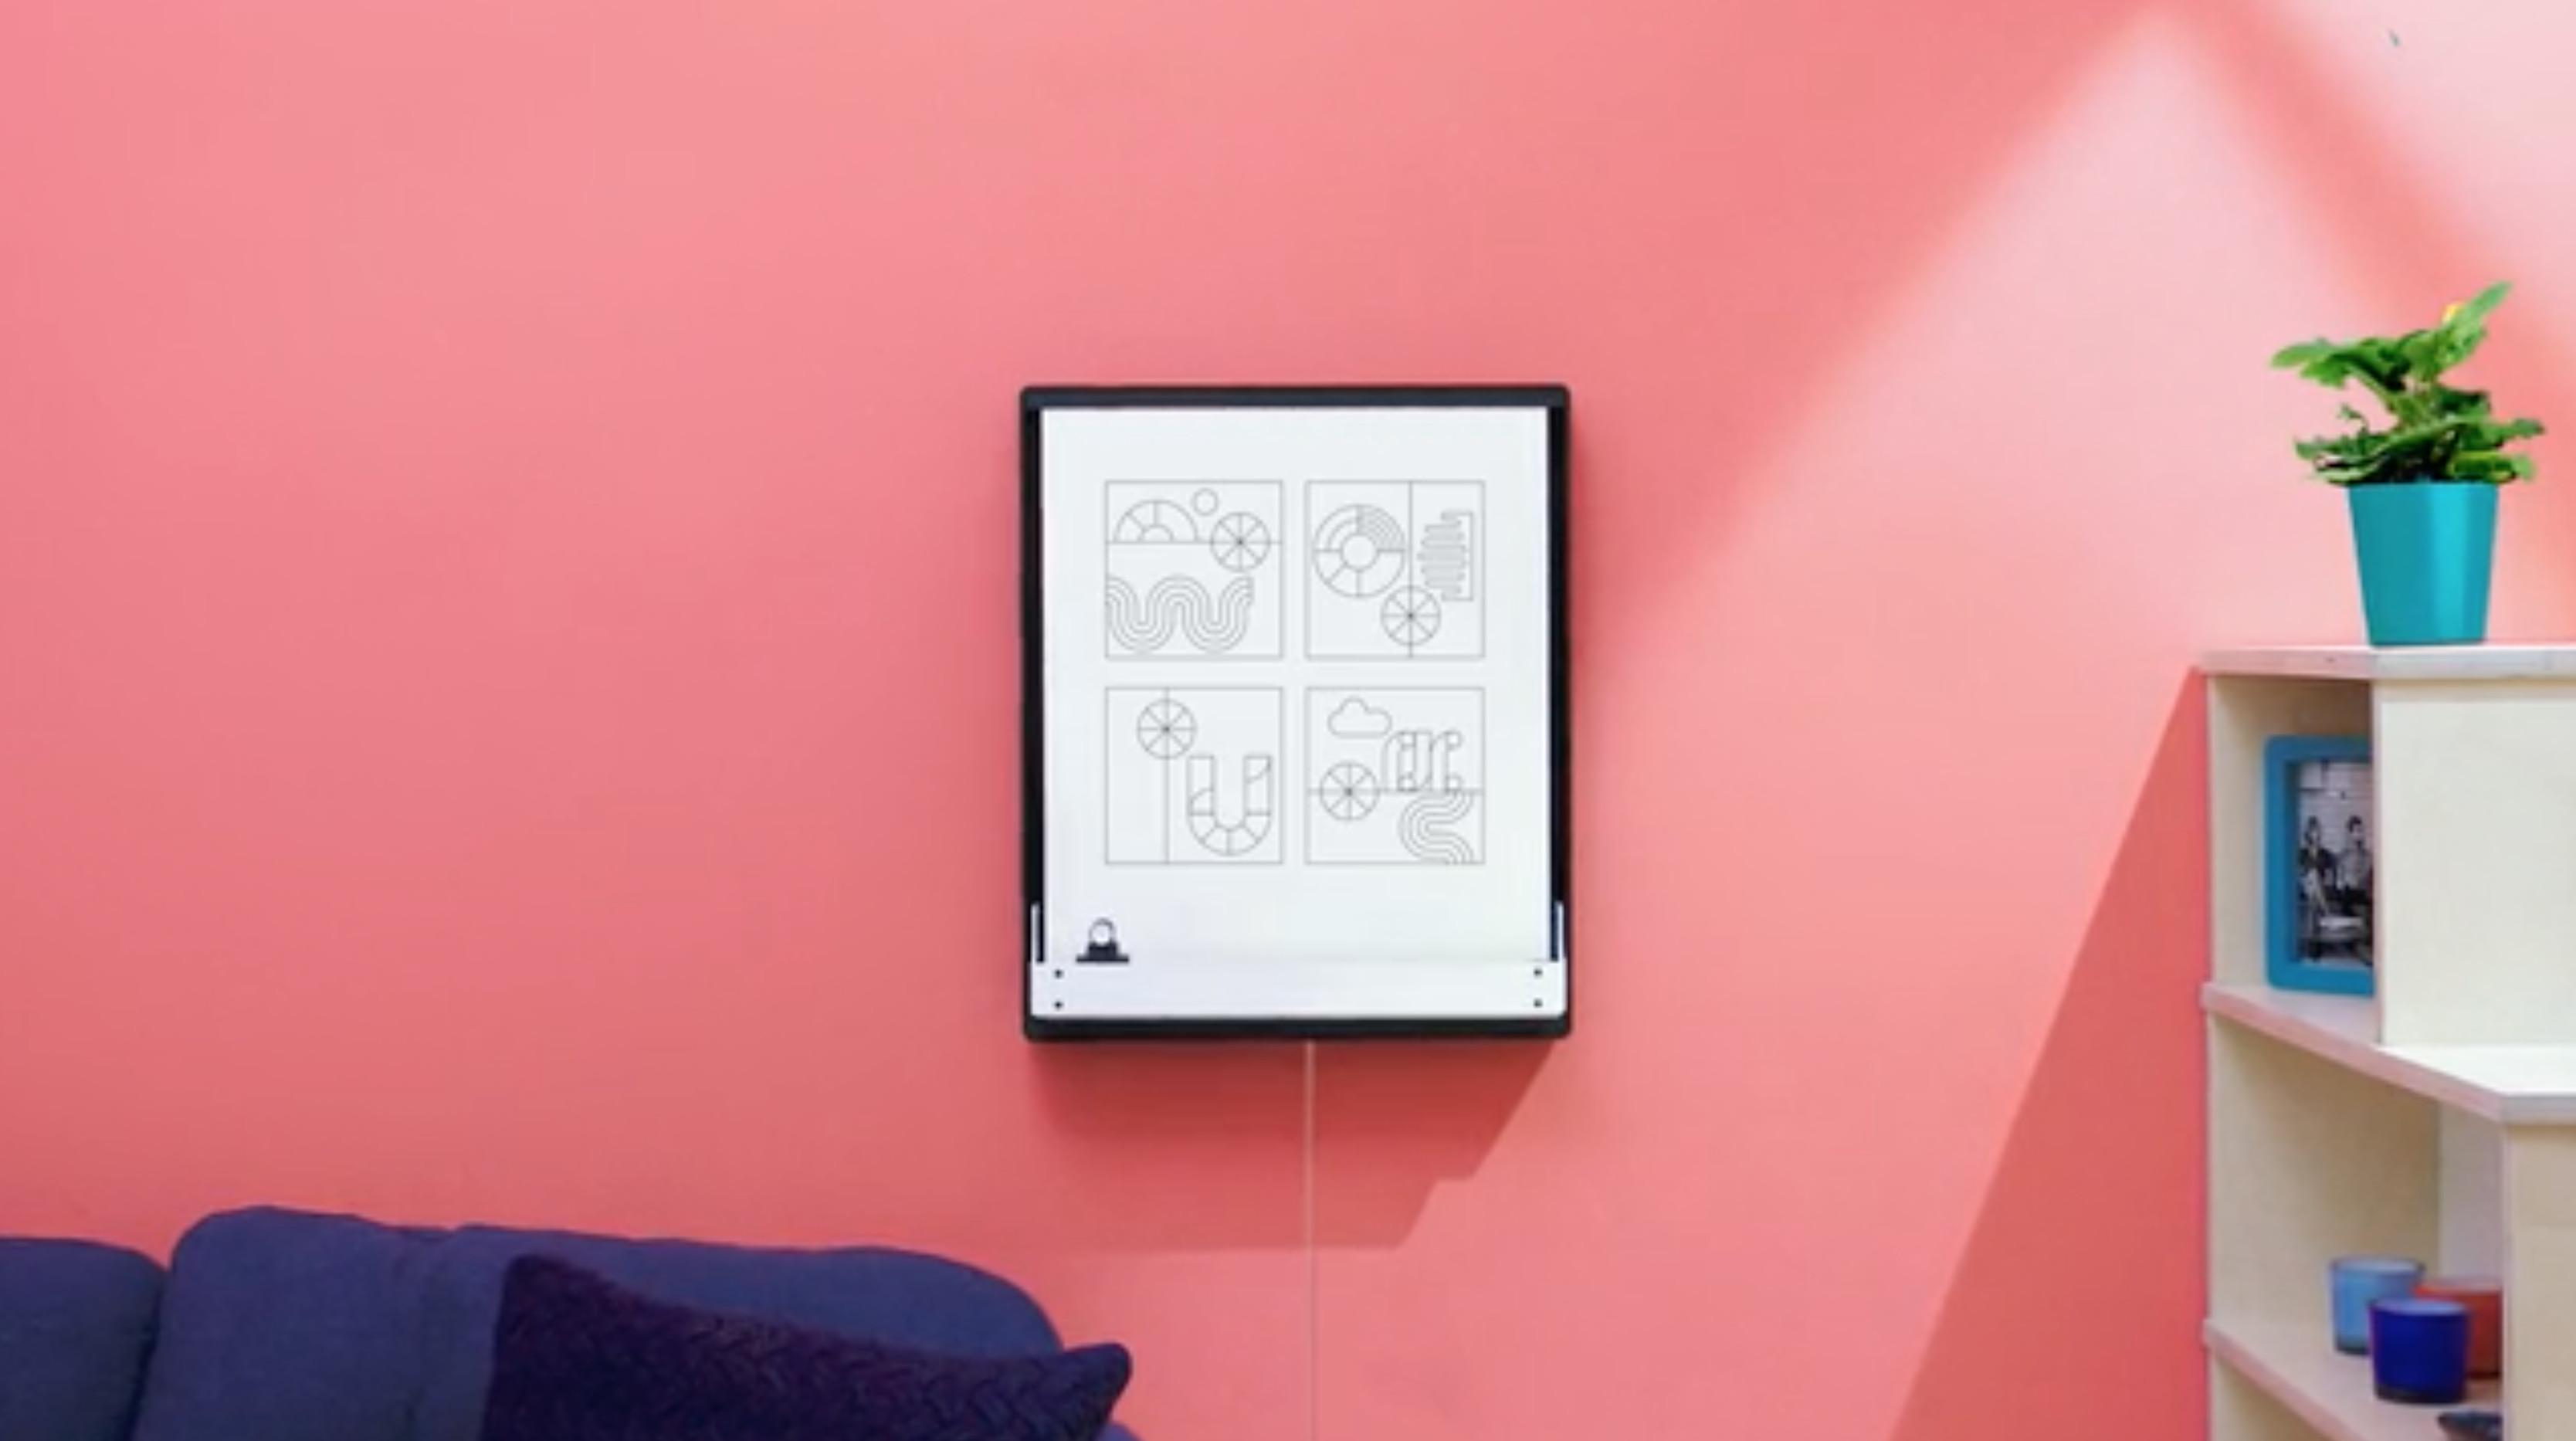 Joto Robotic Whiteboard Can Draw Your Tweets